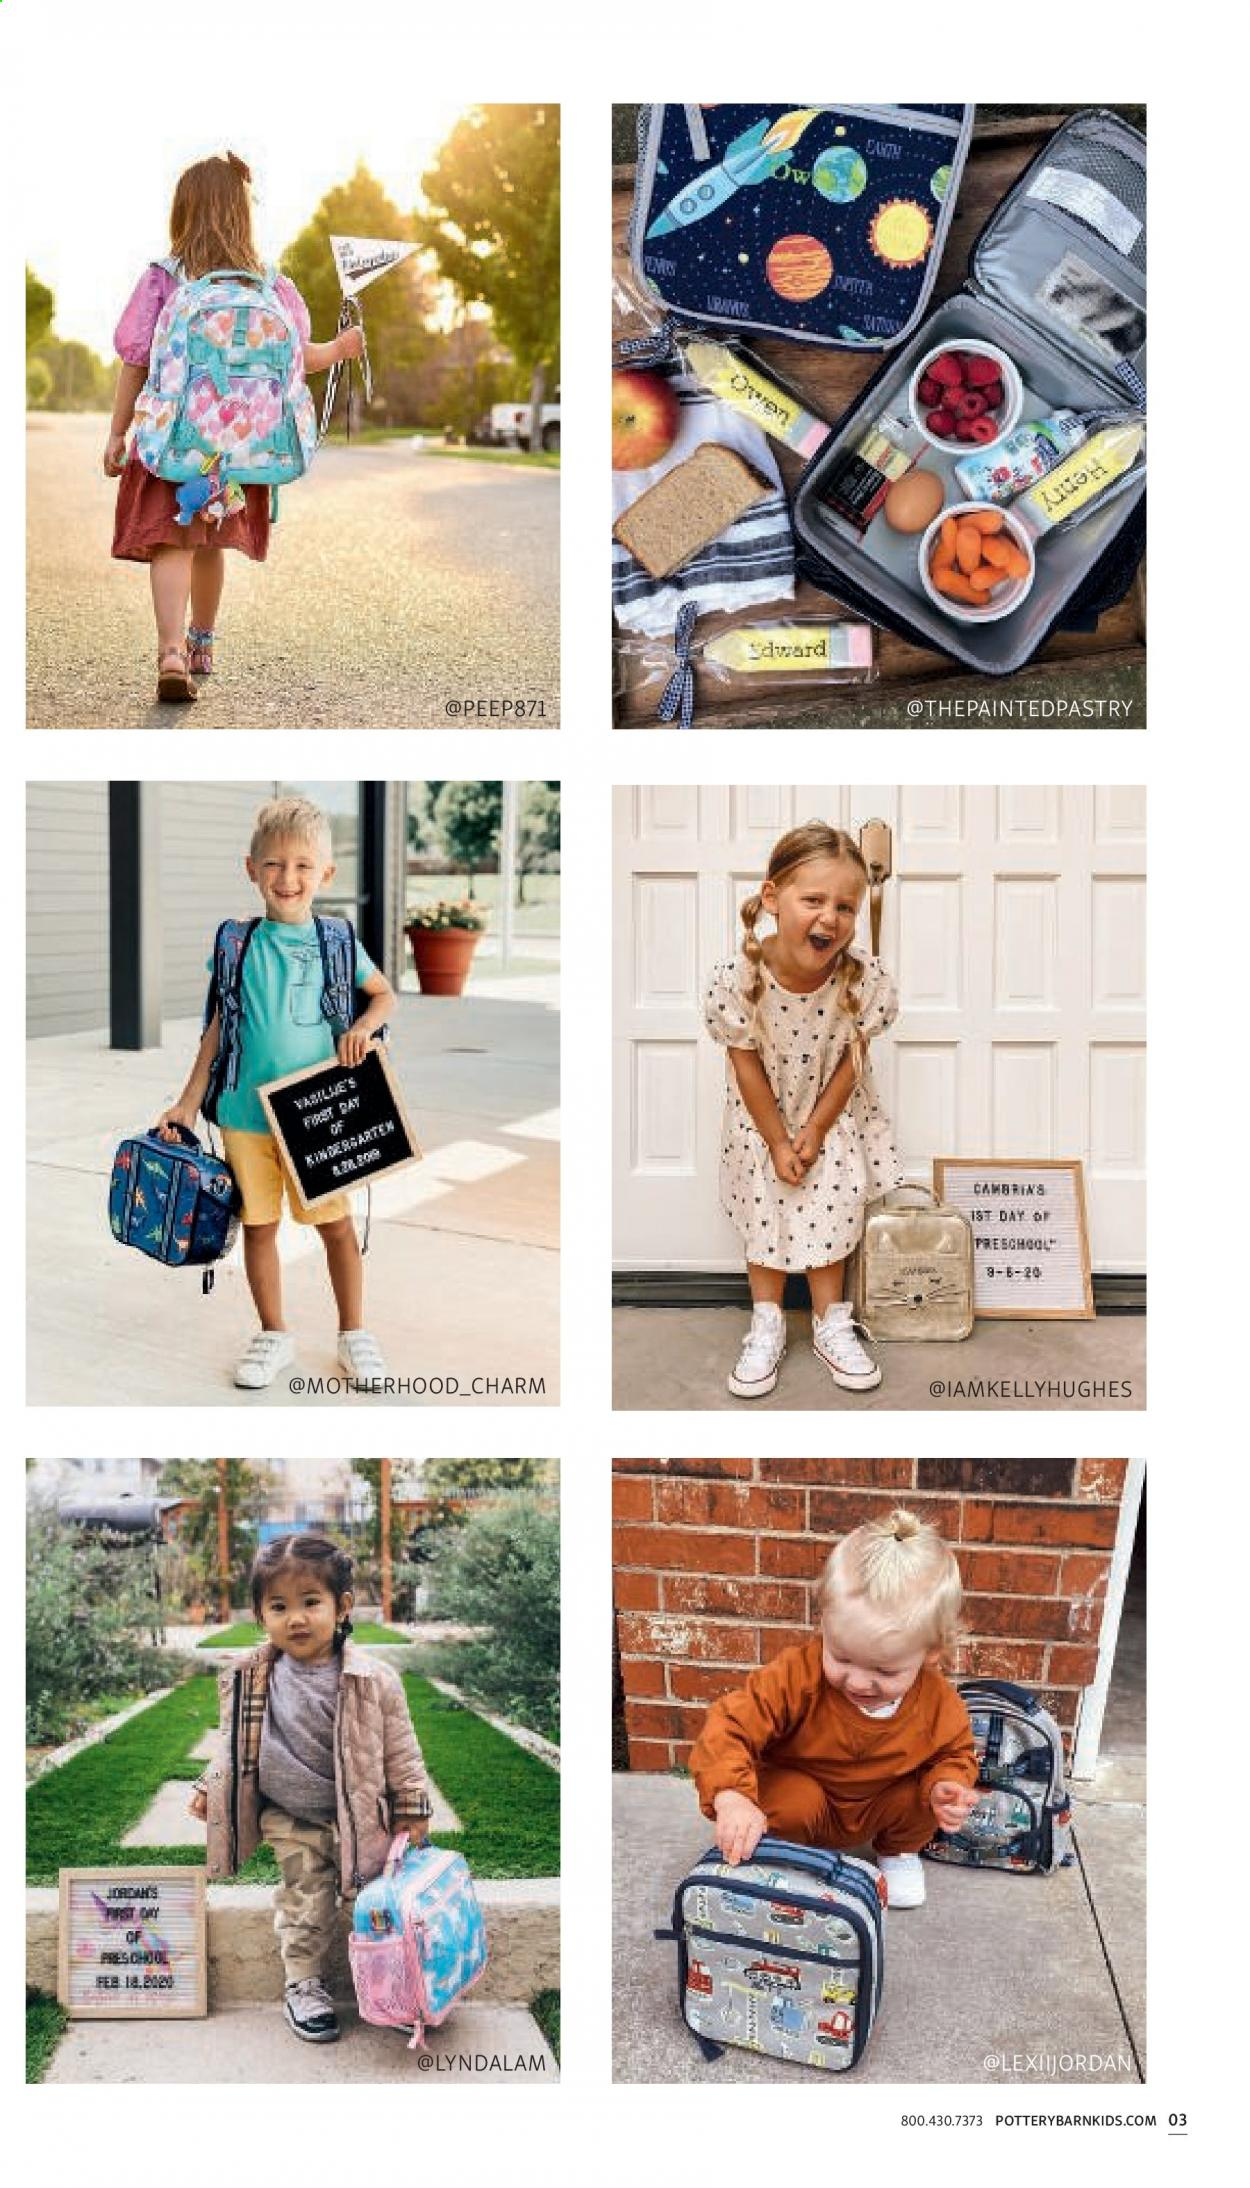 Pottery Barn Ad Kids - Back to School 2021 - Page 3